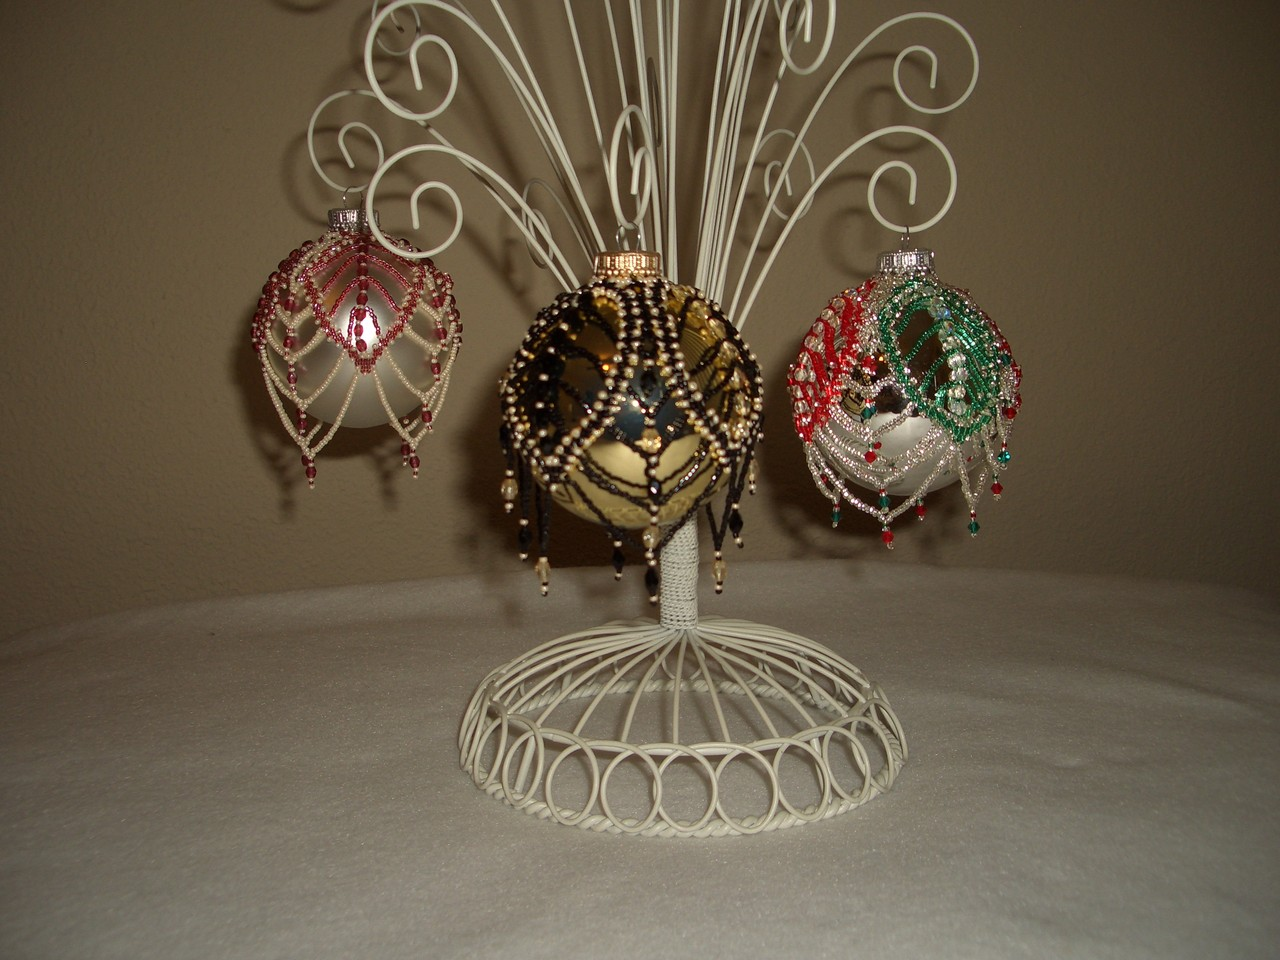 Hand Stitched Beaded Russian Leaf Design Ornament Covers